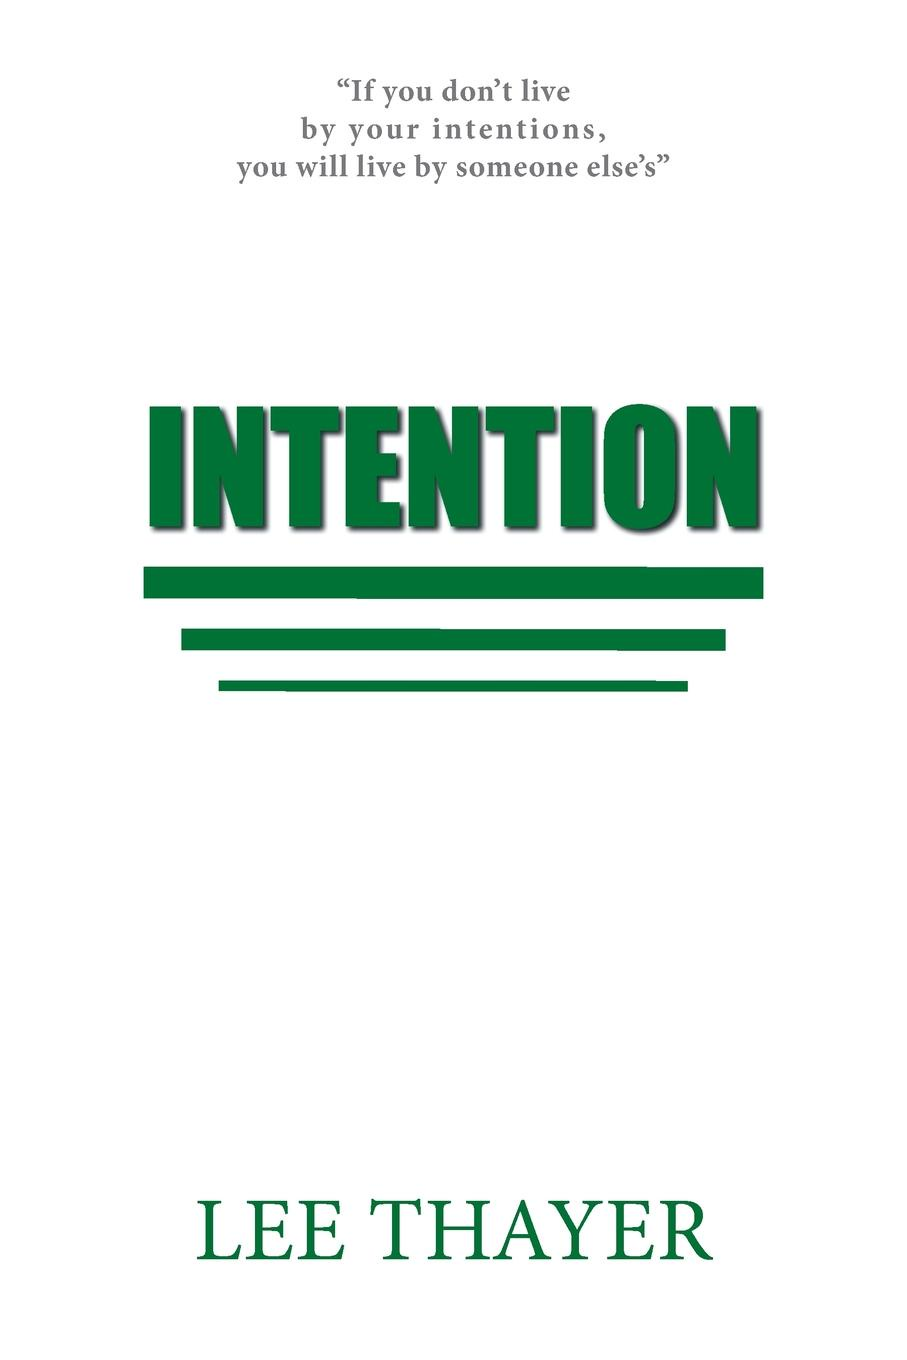 Lee Thayer Intention coleridge christabel rose maud florence nellie or don t care